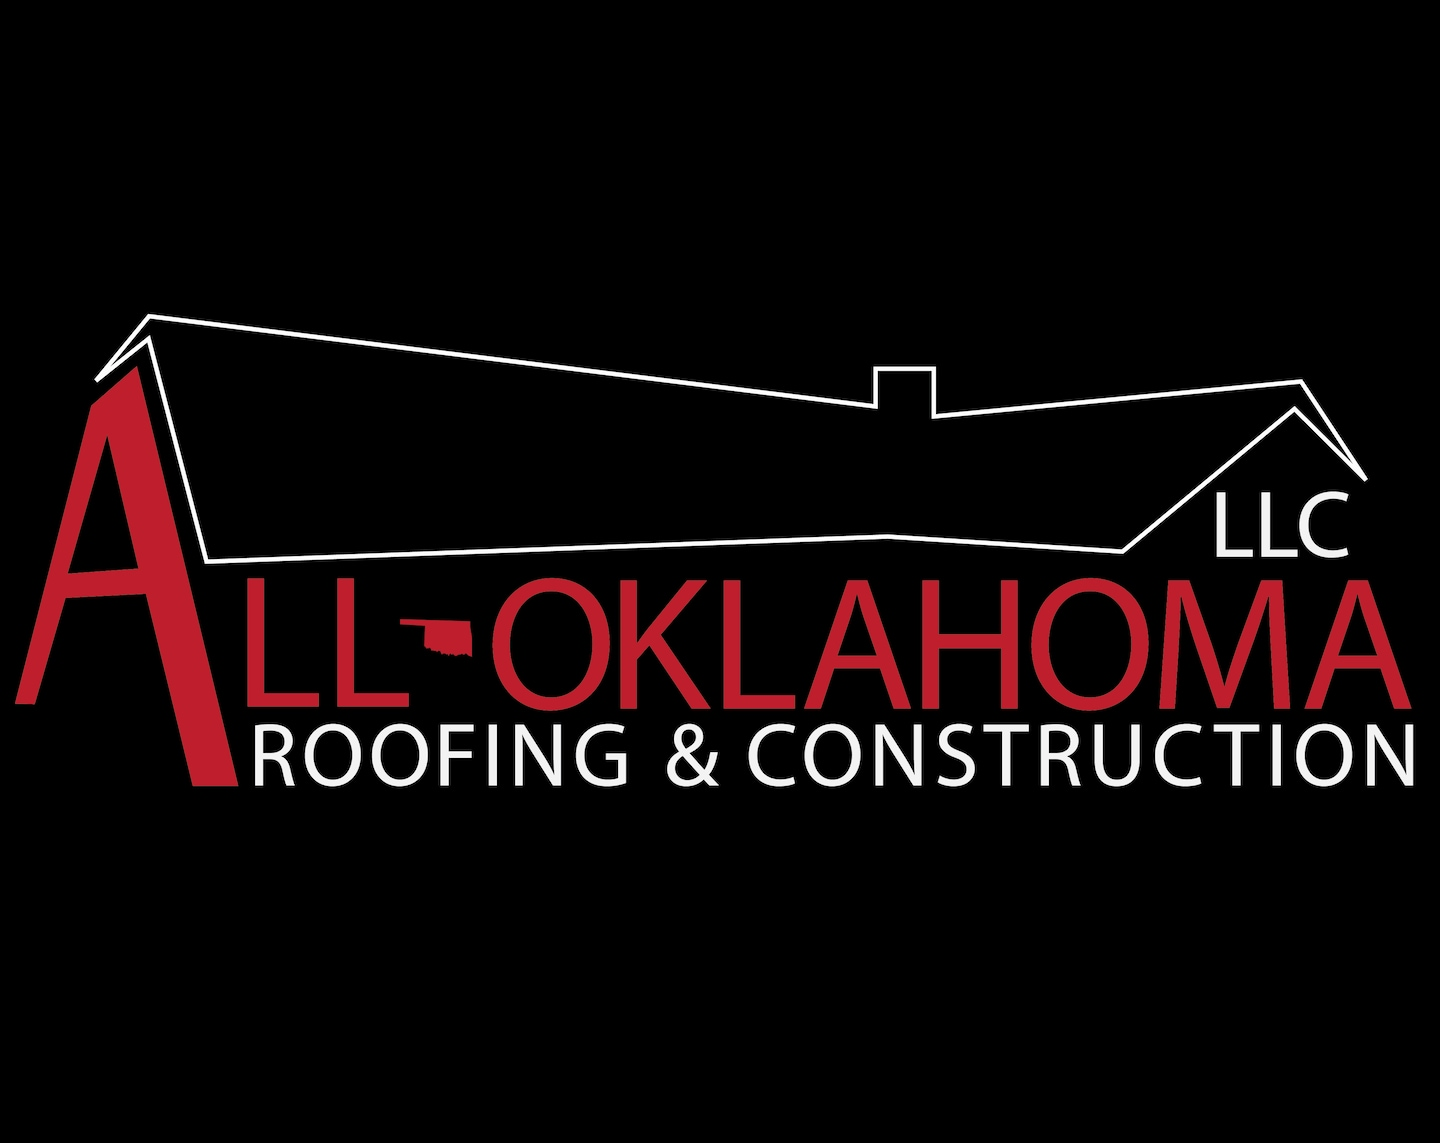 All Oklahoma Roofing & Construction logo